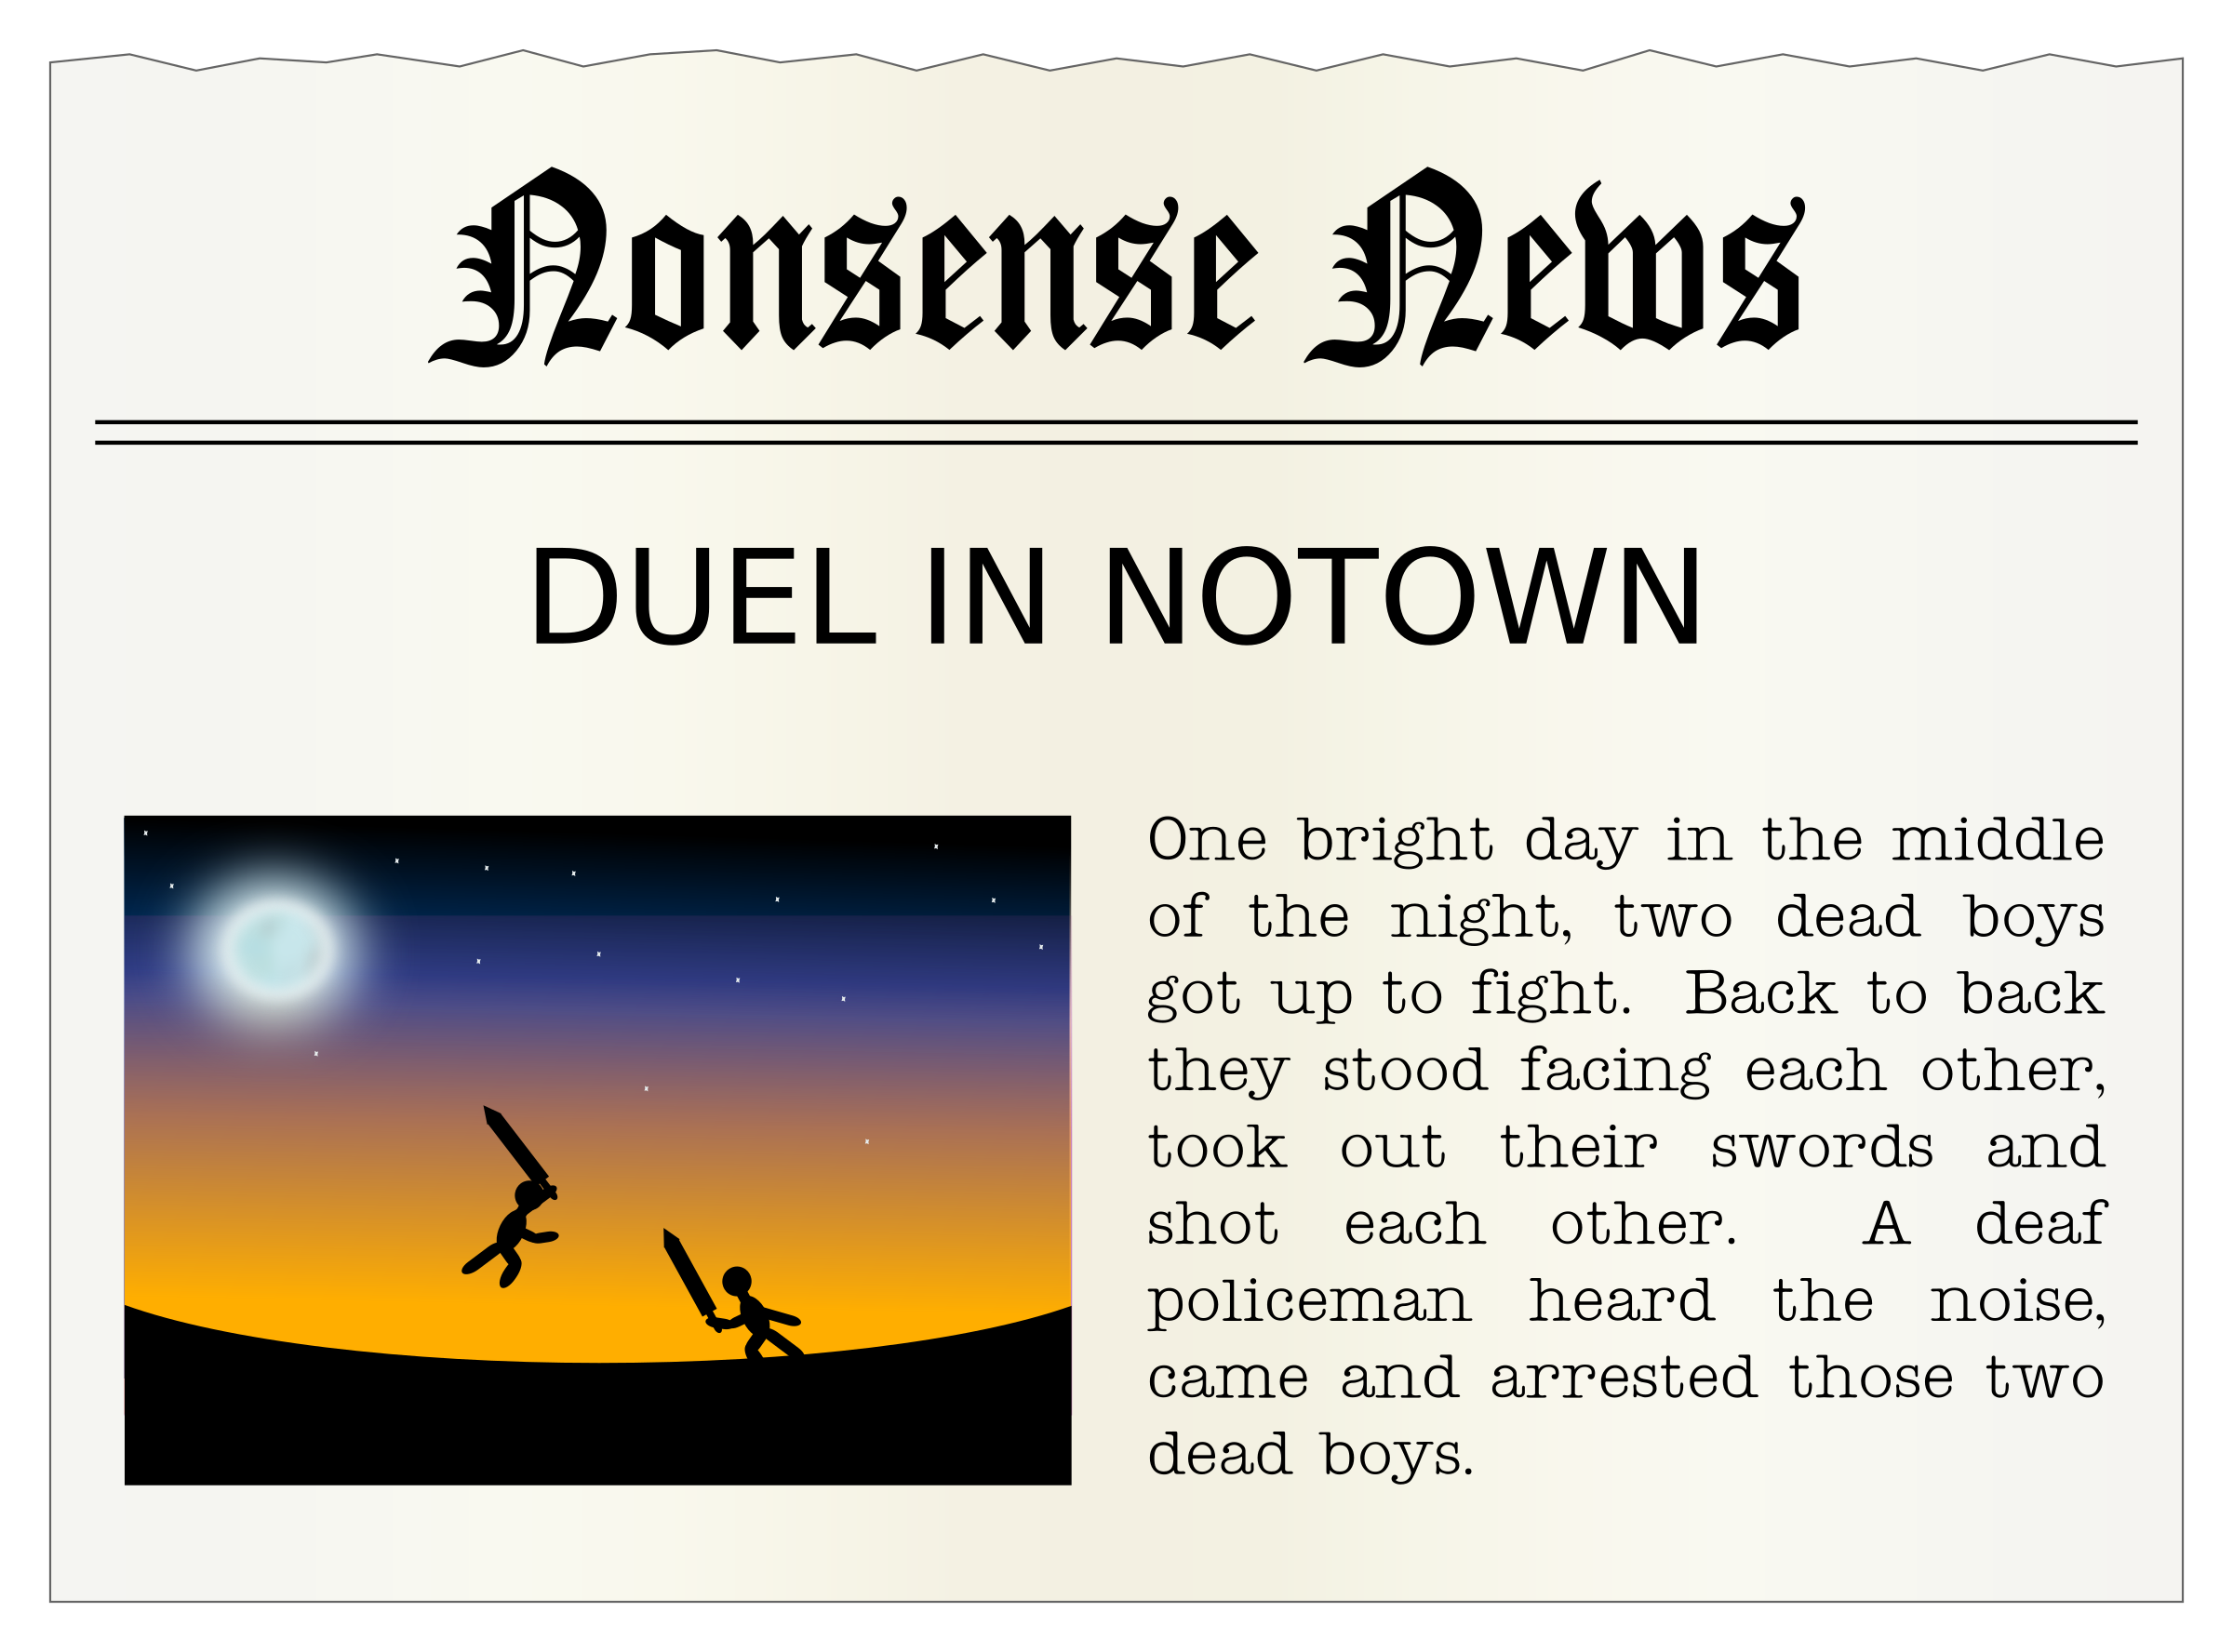 Nonsense News by Arvin61r58